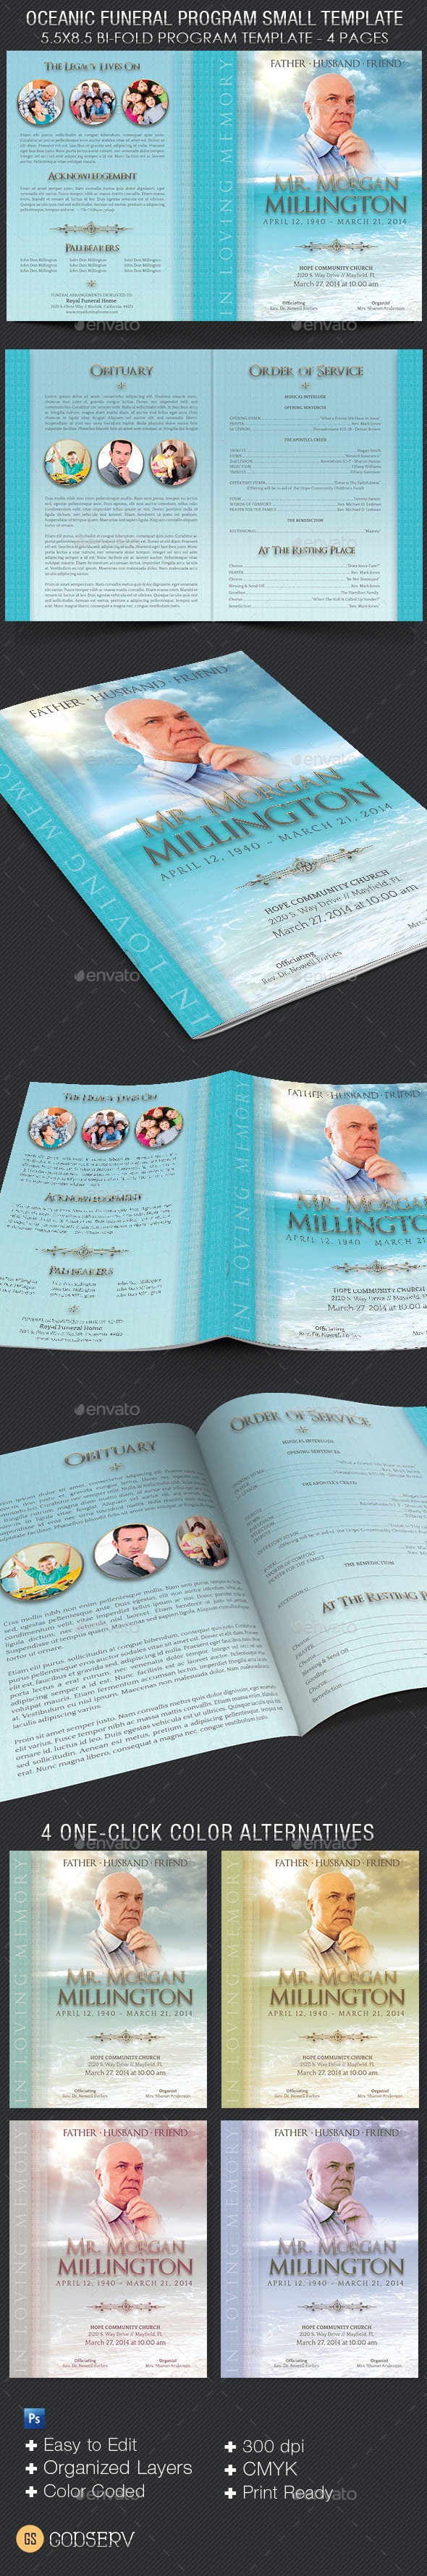 Oceanic Funeral Program Small Template – 4 Pages - Informational Brochures